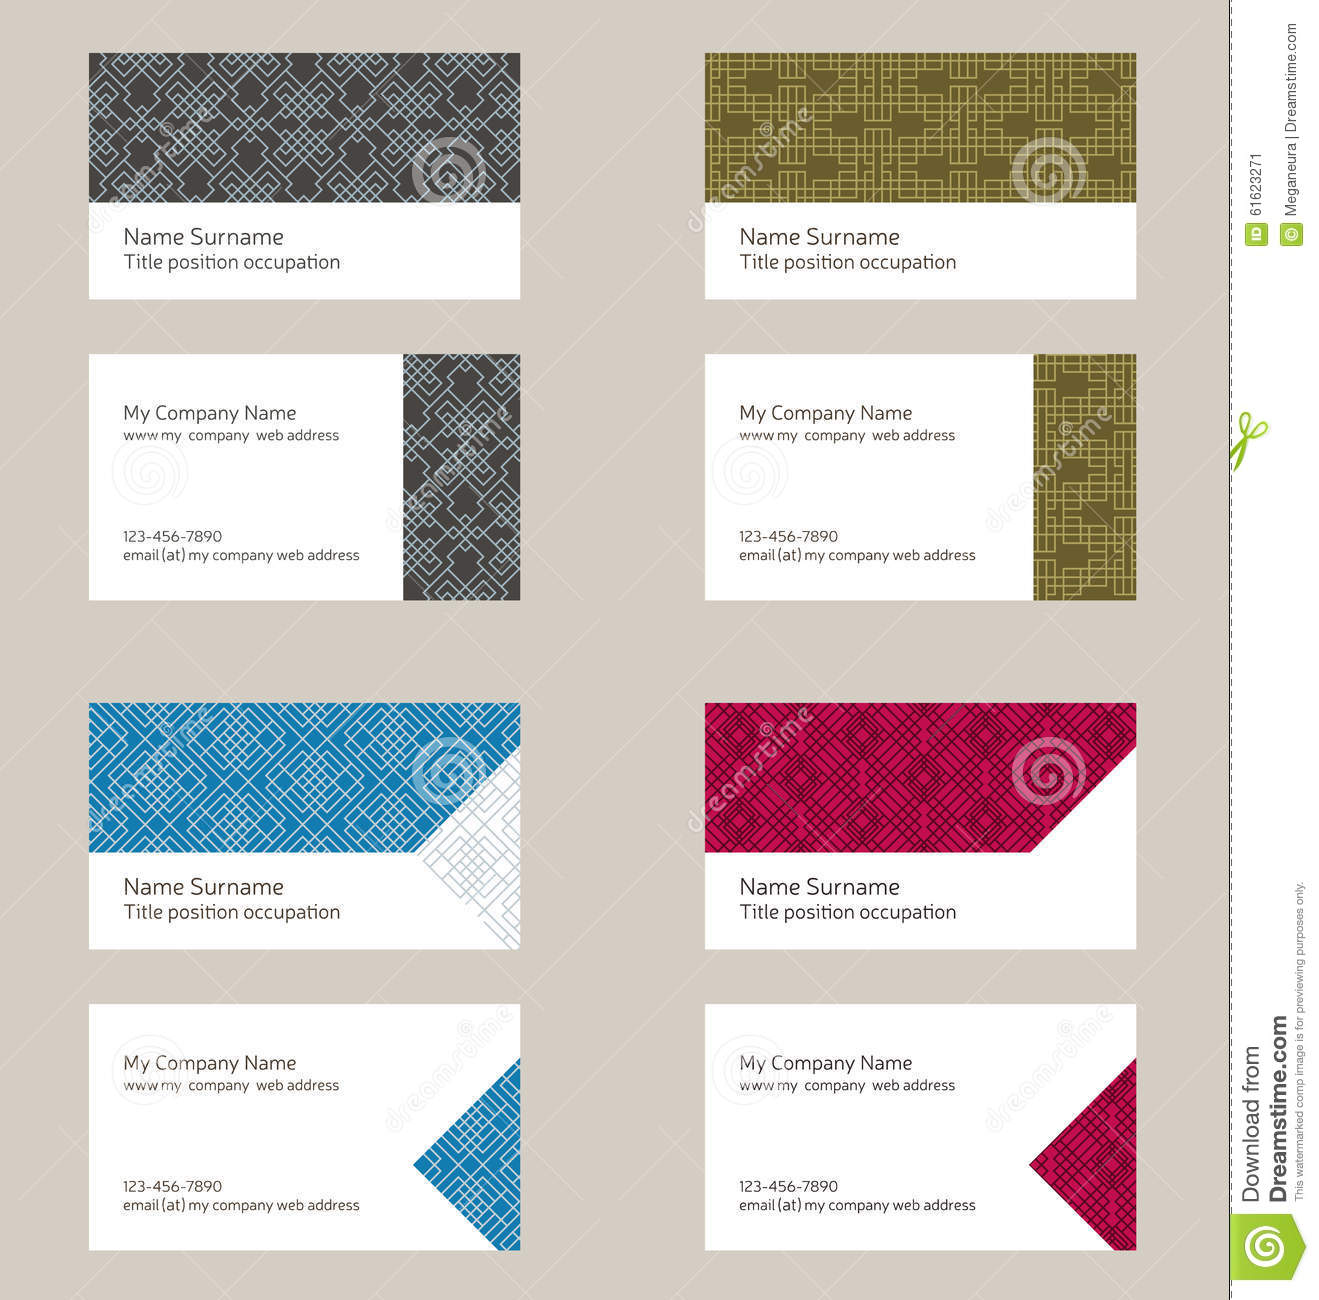 Business card layout linear geometric pattern editable design business card layout linear geometric pattern editable design magicingreecefo Choice Image